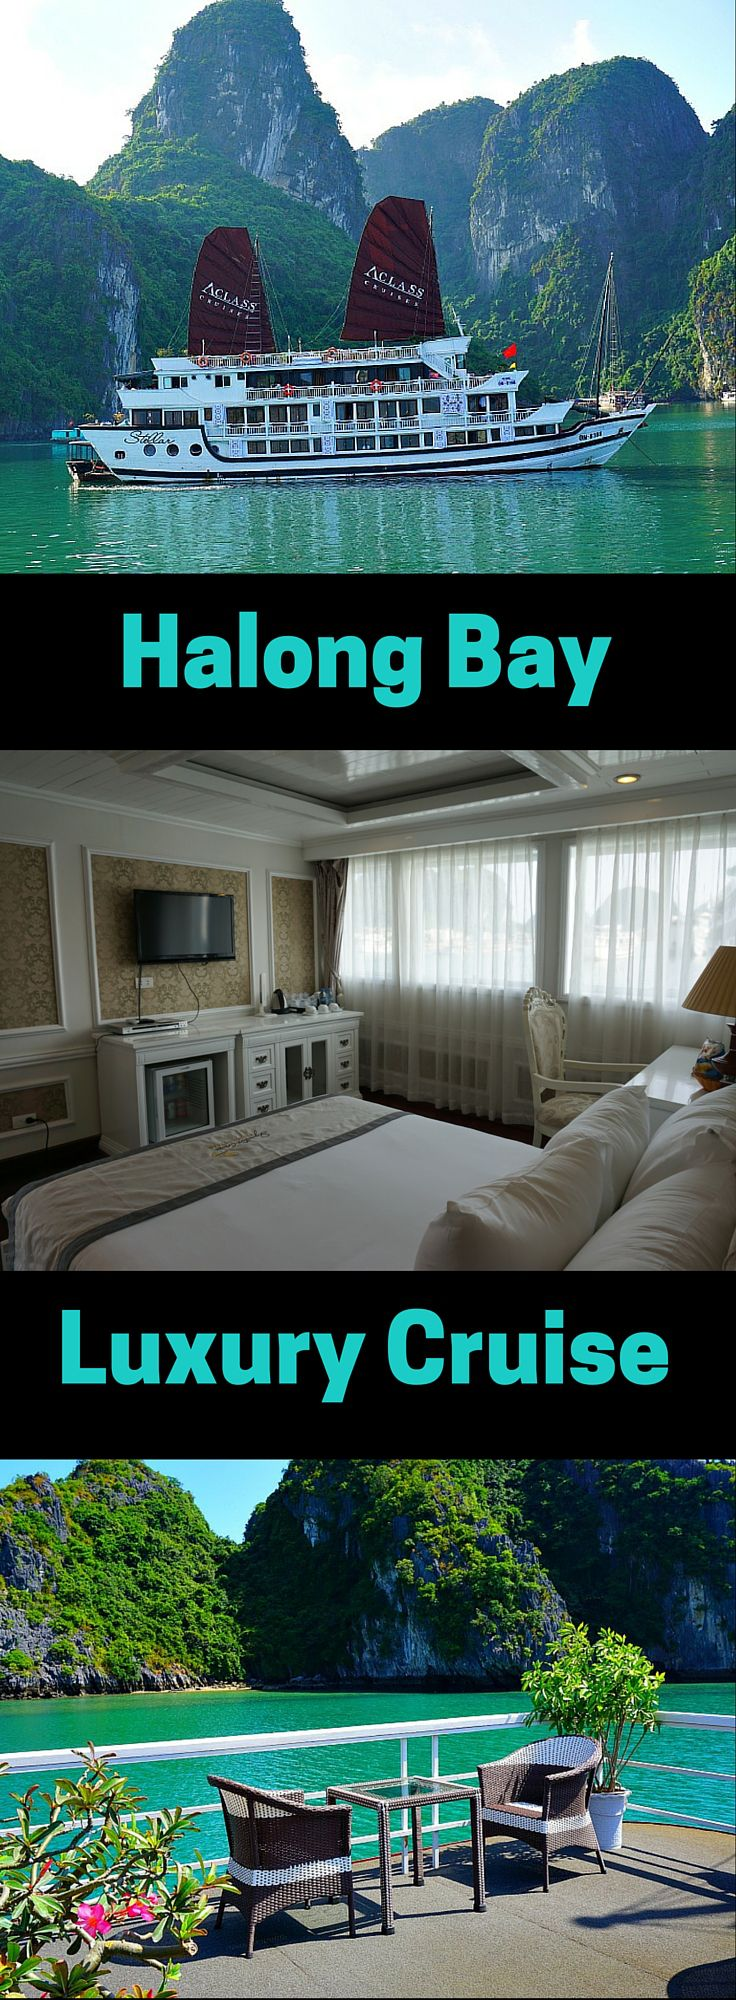 "Halong Bay is a wonderful place to spend a 2-day cruise exploring Vietnam's picturesque UNESCO World Heritage Site. You can enjoy the limestone rock formations, turquoise blue water, kayaking, swimming and exploring the amazing ""Surprise"" cave. All the while enjoying amazing Vietnamese cuisine. Click to read more! @venturists"